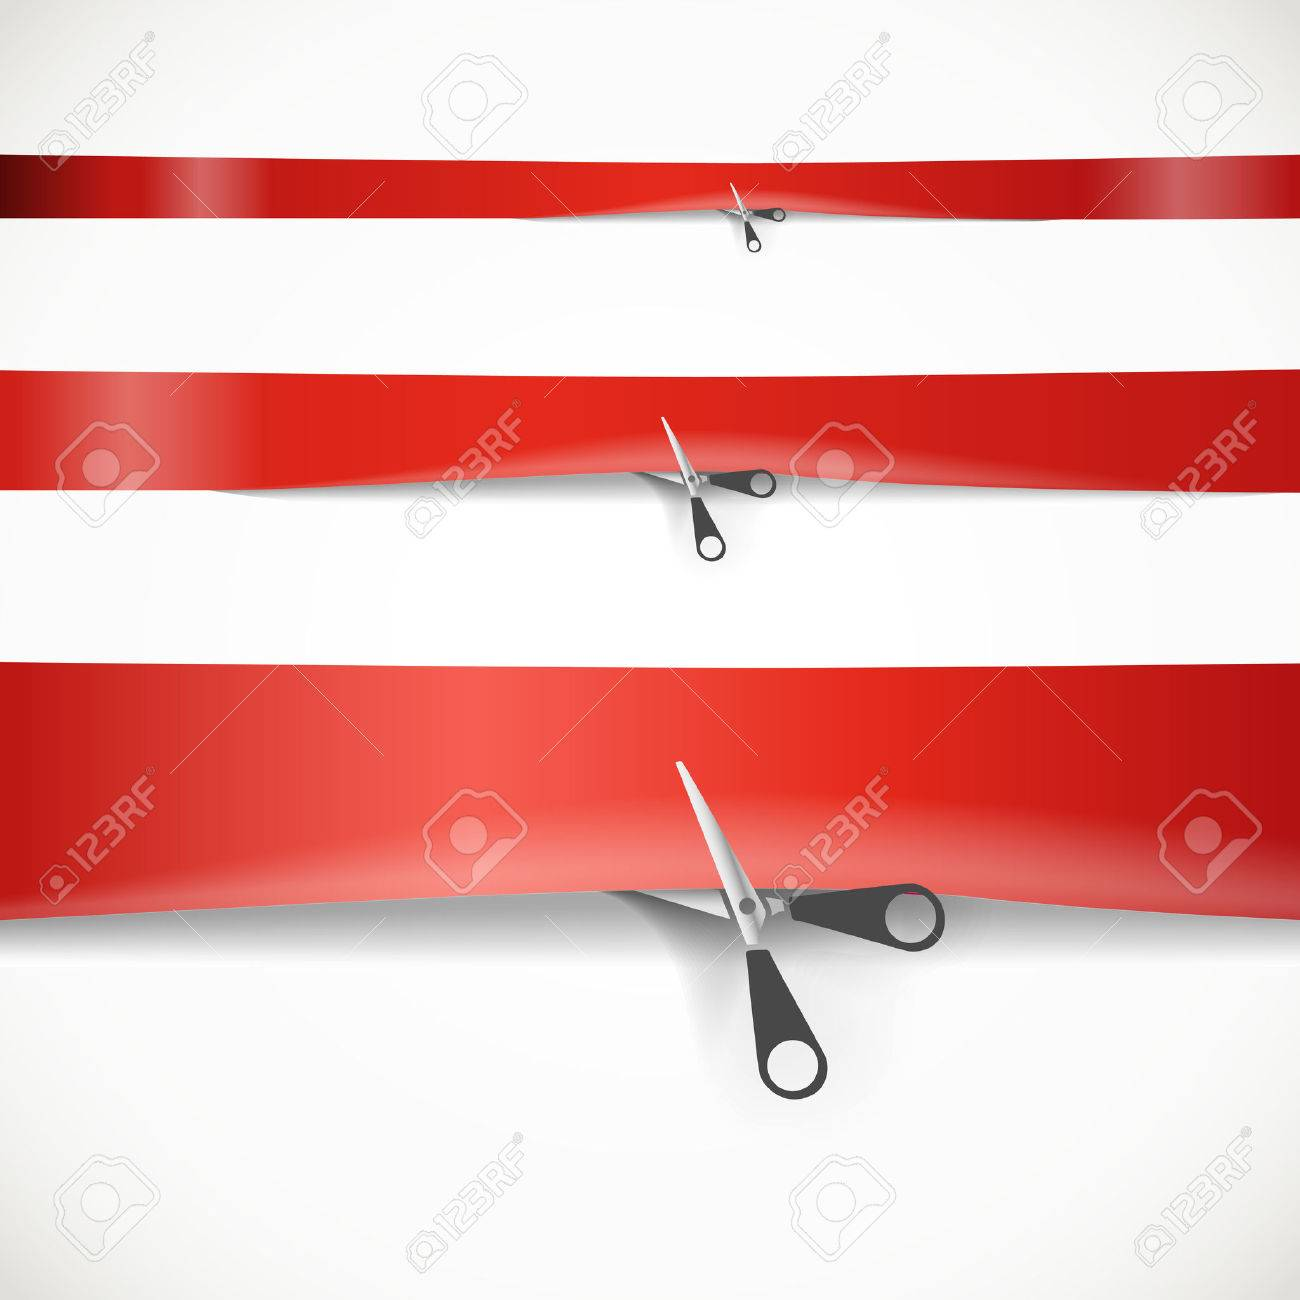 Scissors cutting the red advertising ribbon - 22712988